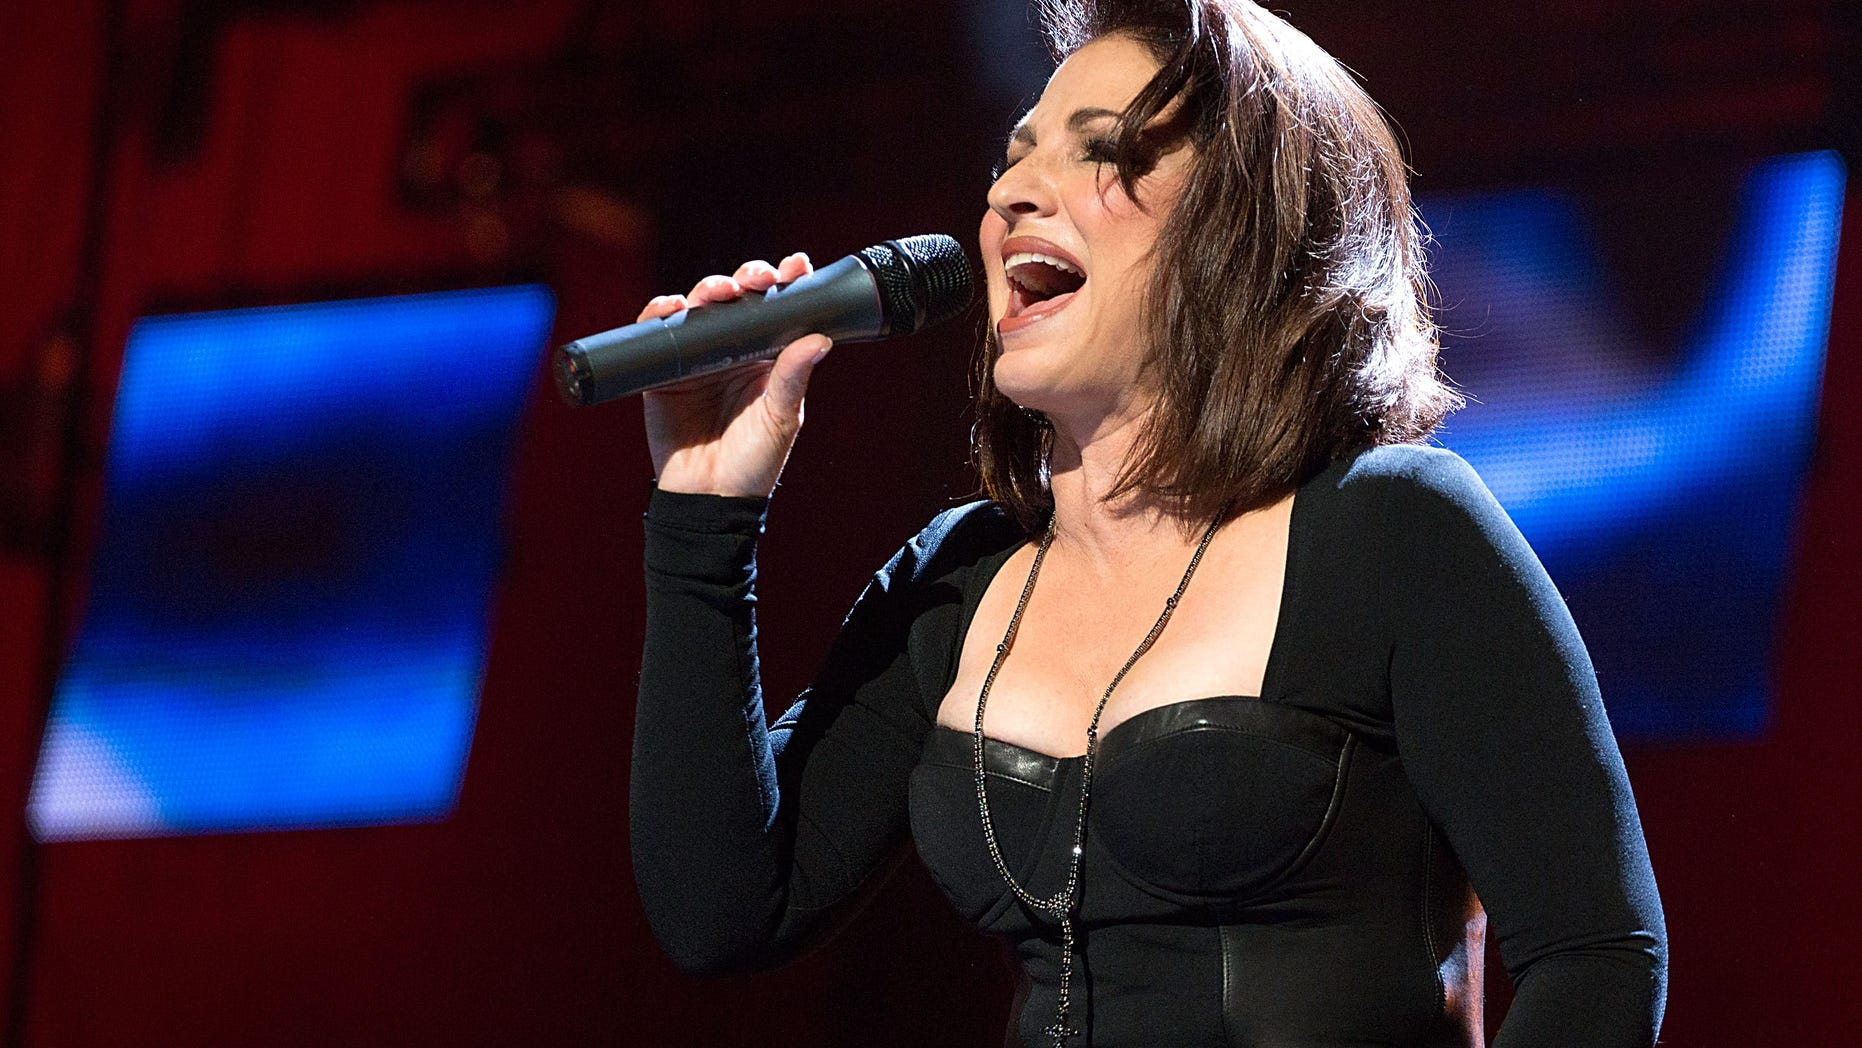 SAN ANTONIO, TX - AUGUST 31:  Gloria Estefan performs at the Festival People en Español Presented by Target at The Alamodome on August 31, 2013 in San Antonio, Texas.  (Photo by Rick Kern/Getty Images for Target)